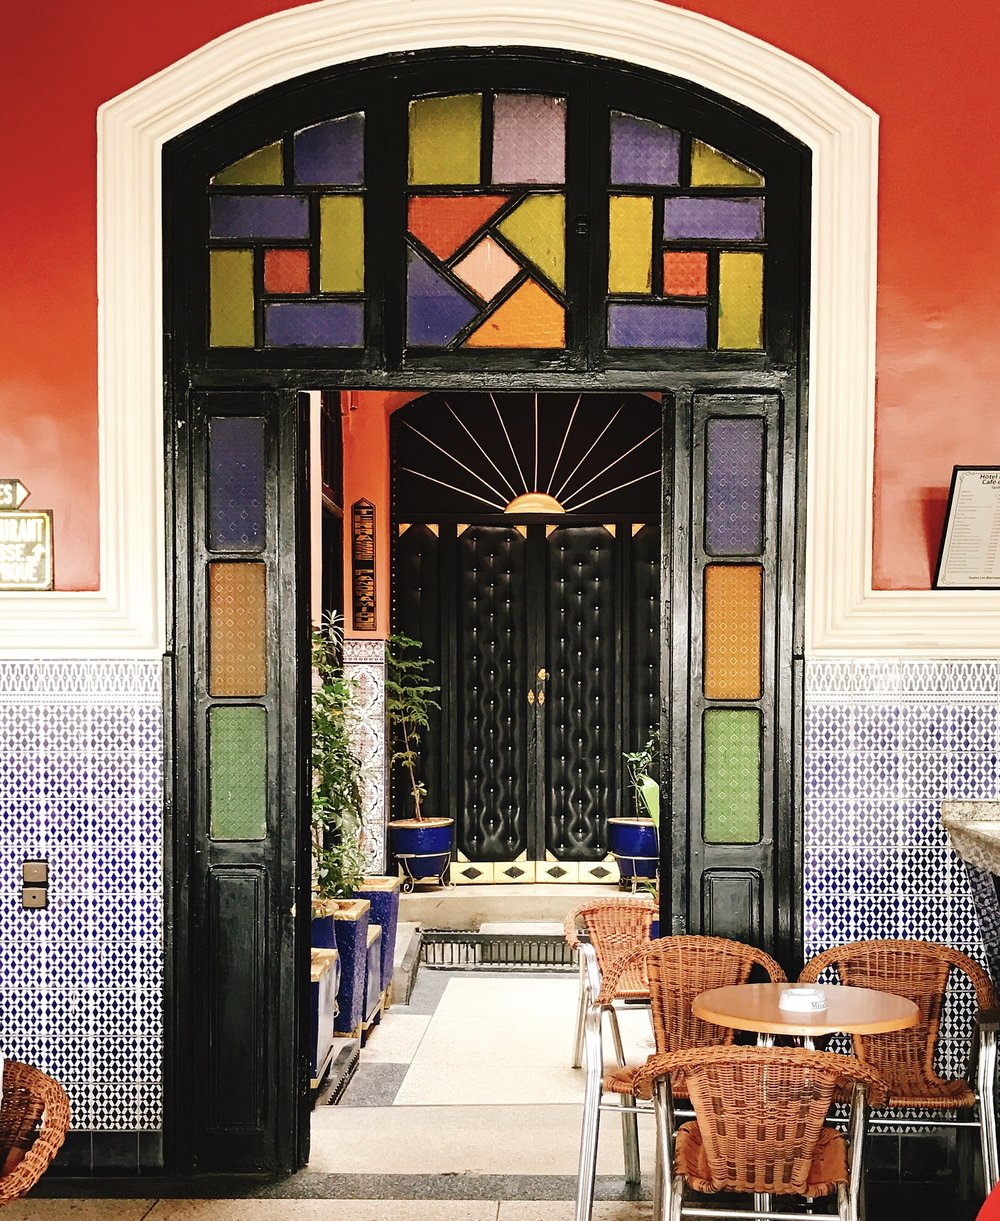 Inside Cafe de Paris-  The bright colors of the souks are echoed throughout